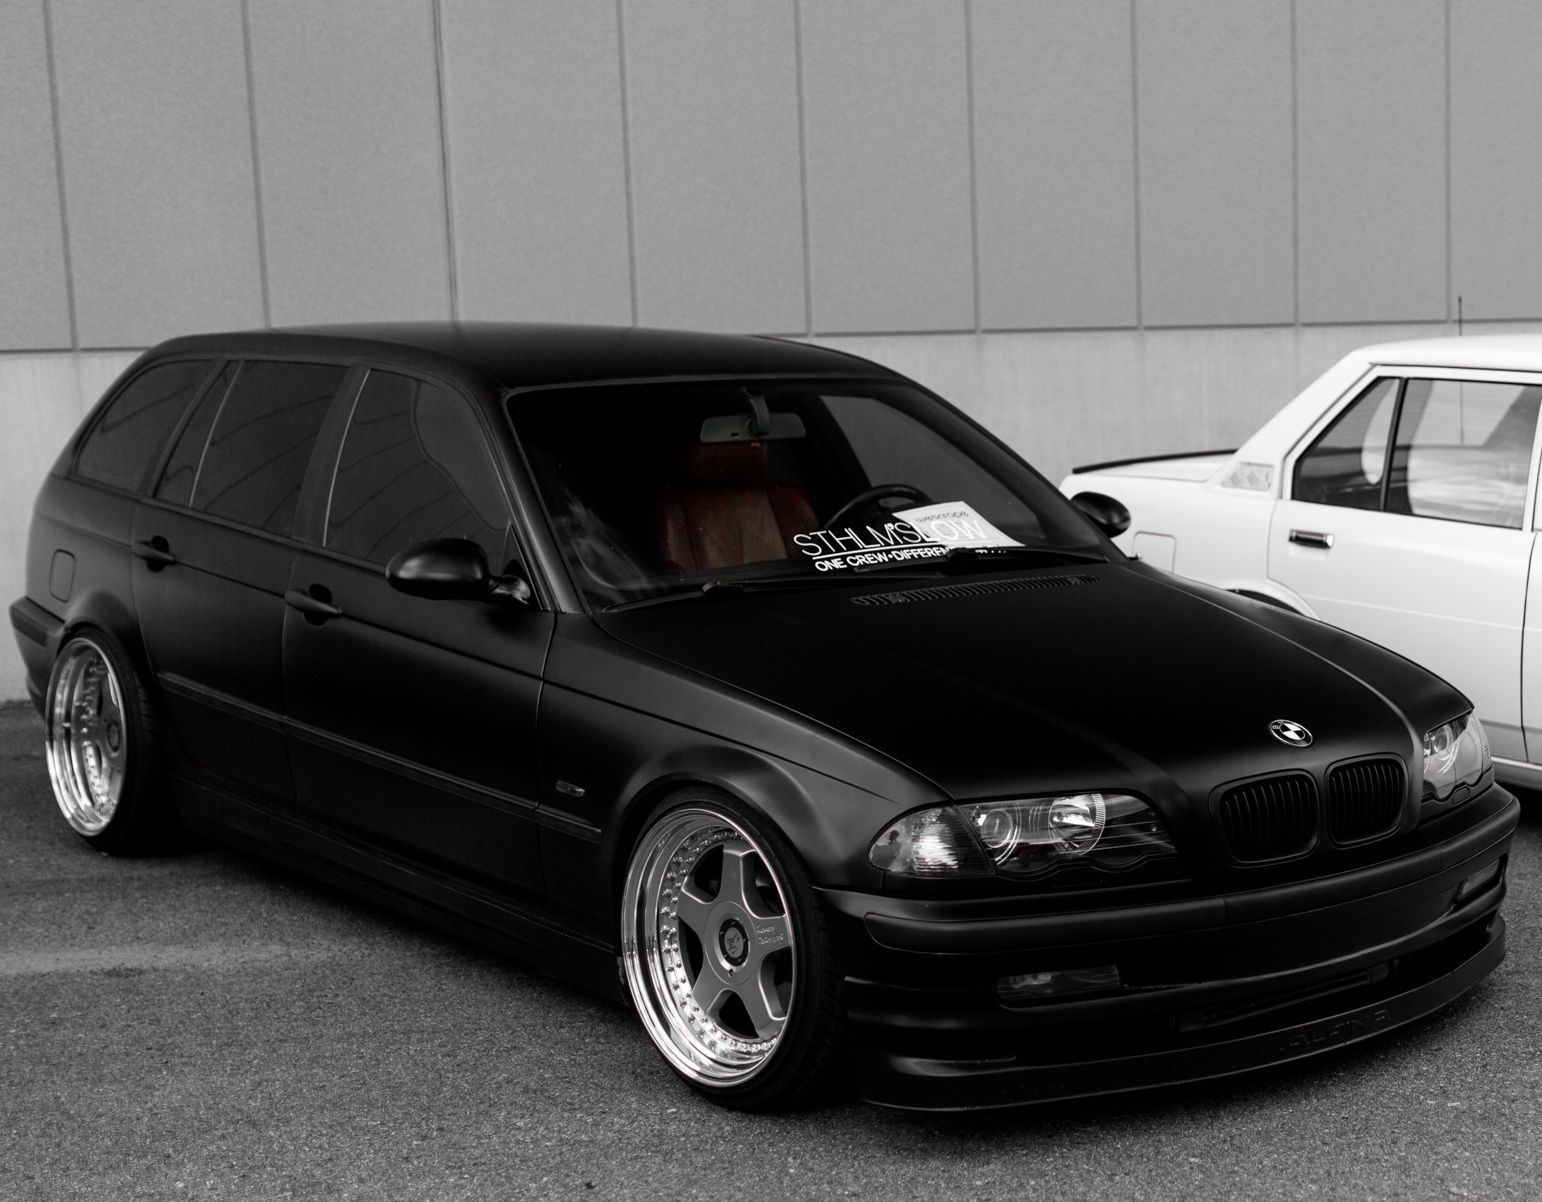 bmw e46 touring bmw 4ever pinterest bmw e46 bmw and cars. Black Bedroom Furniture Sets. Home Design Ideas